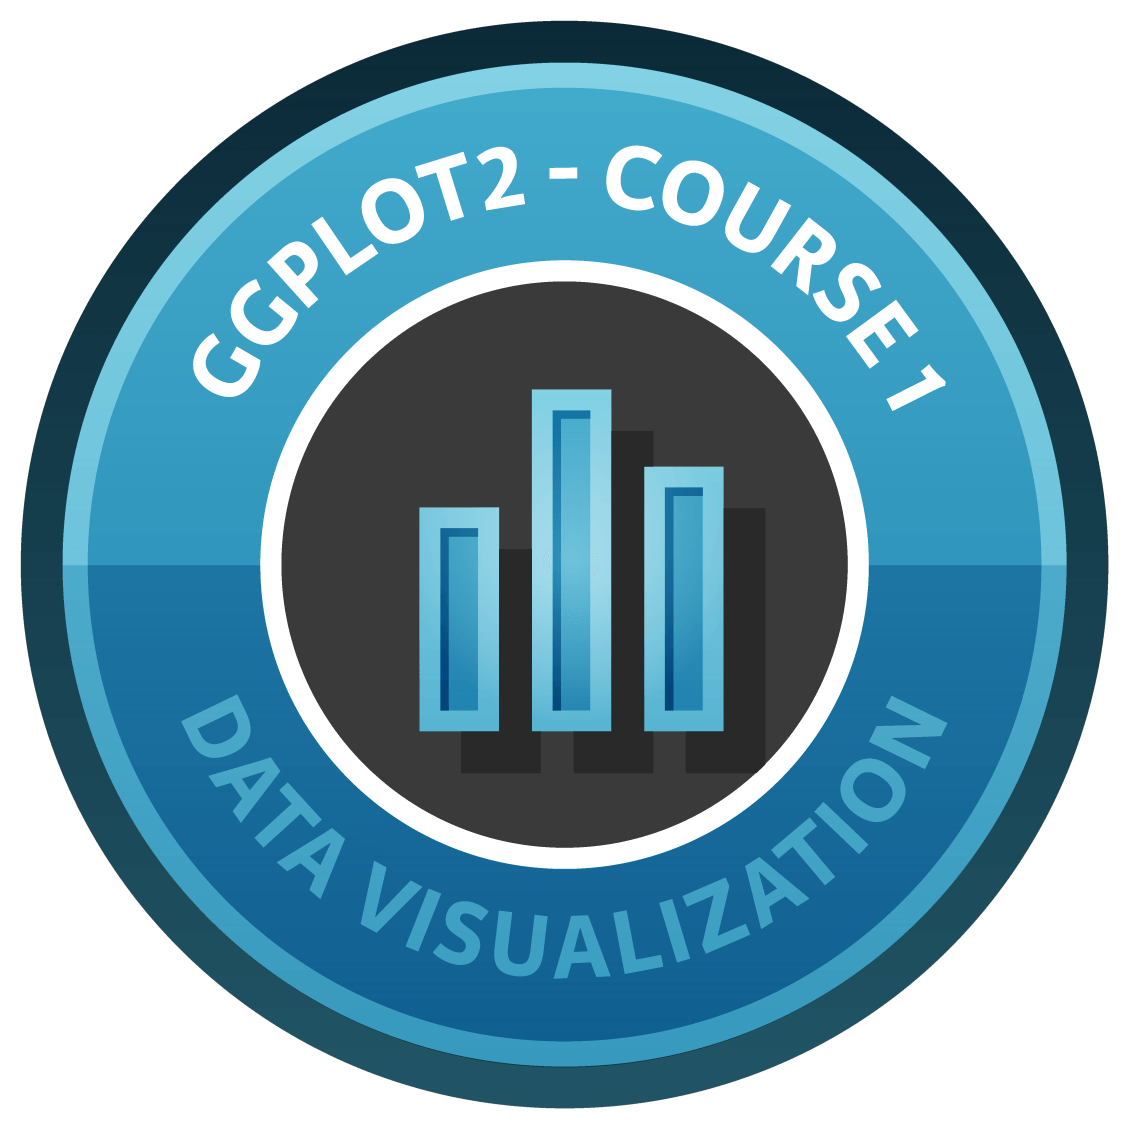 Data Visualization with ggplot2 (Part 1)